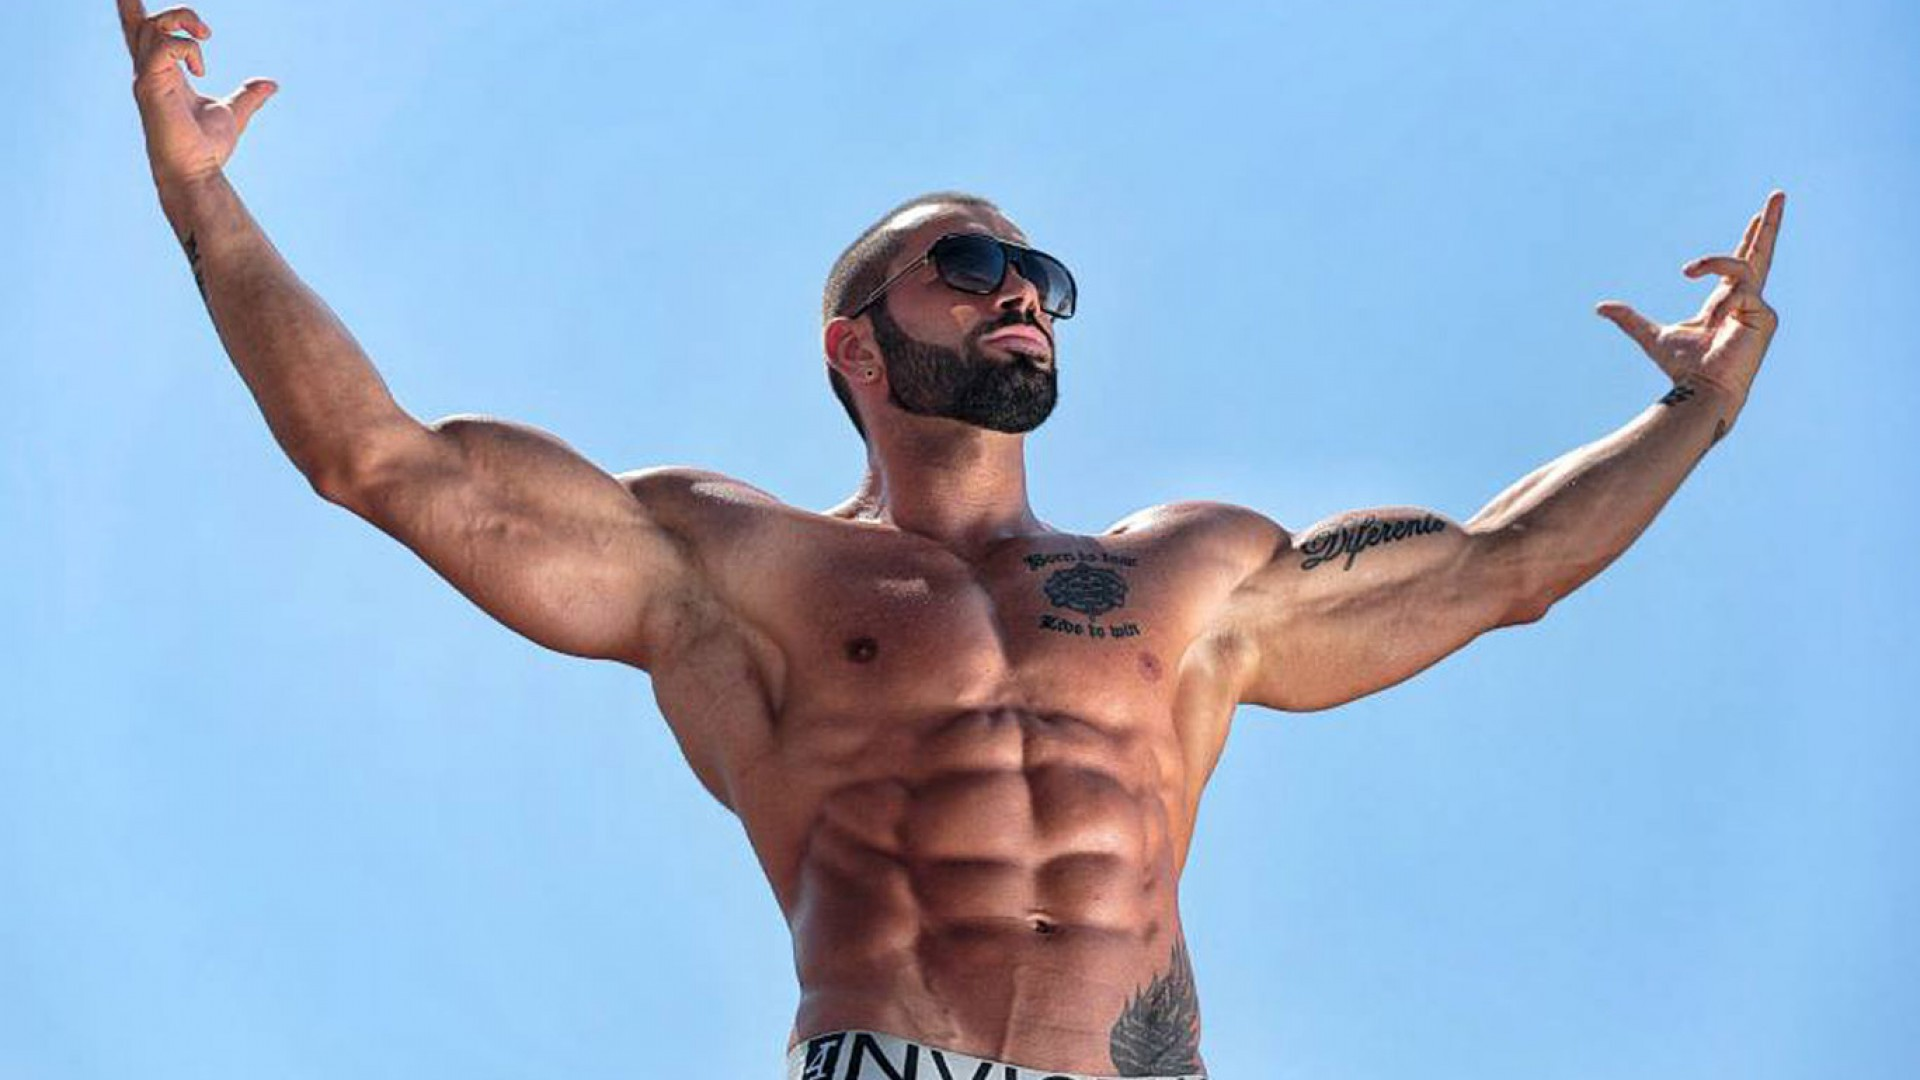 Lazar Angelov Wallpapers HD Free Download